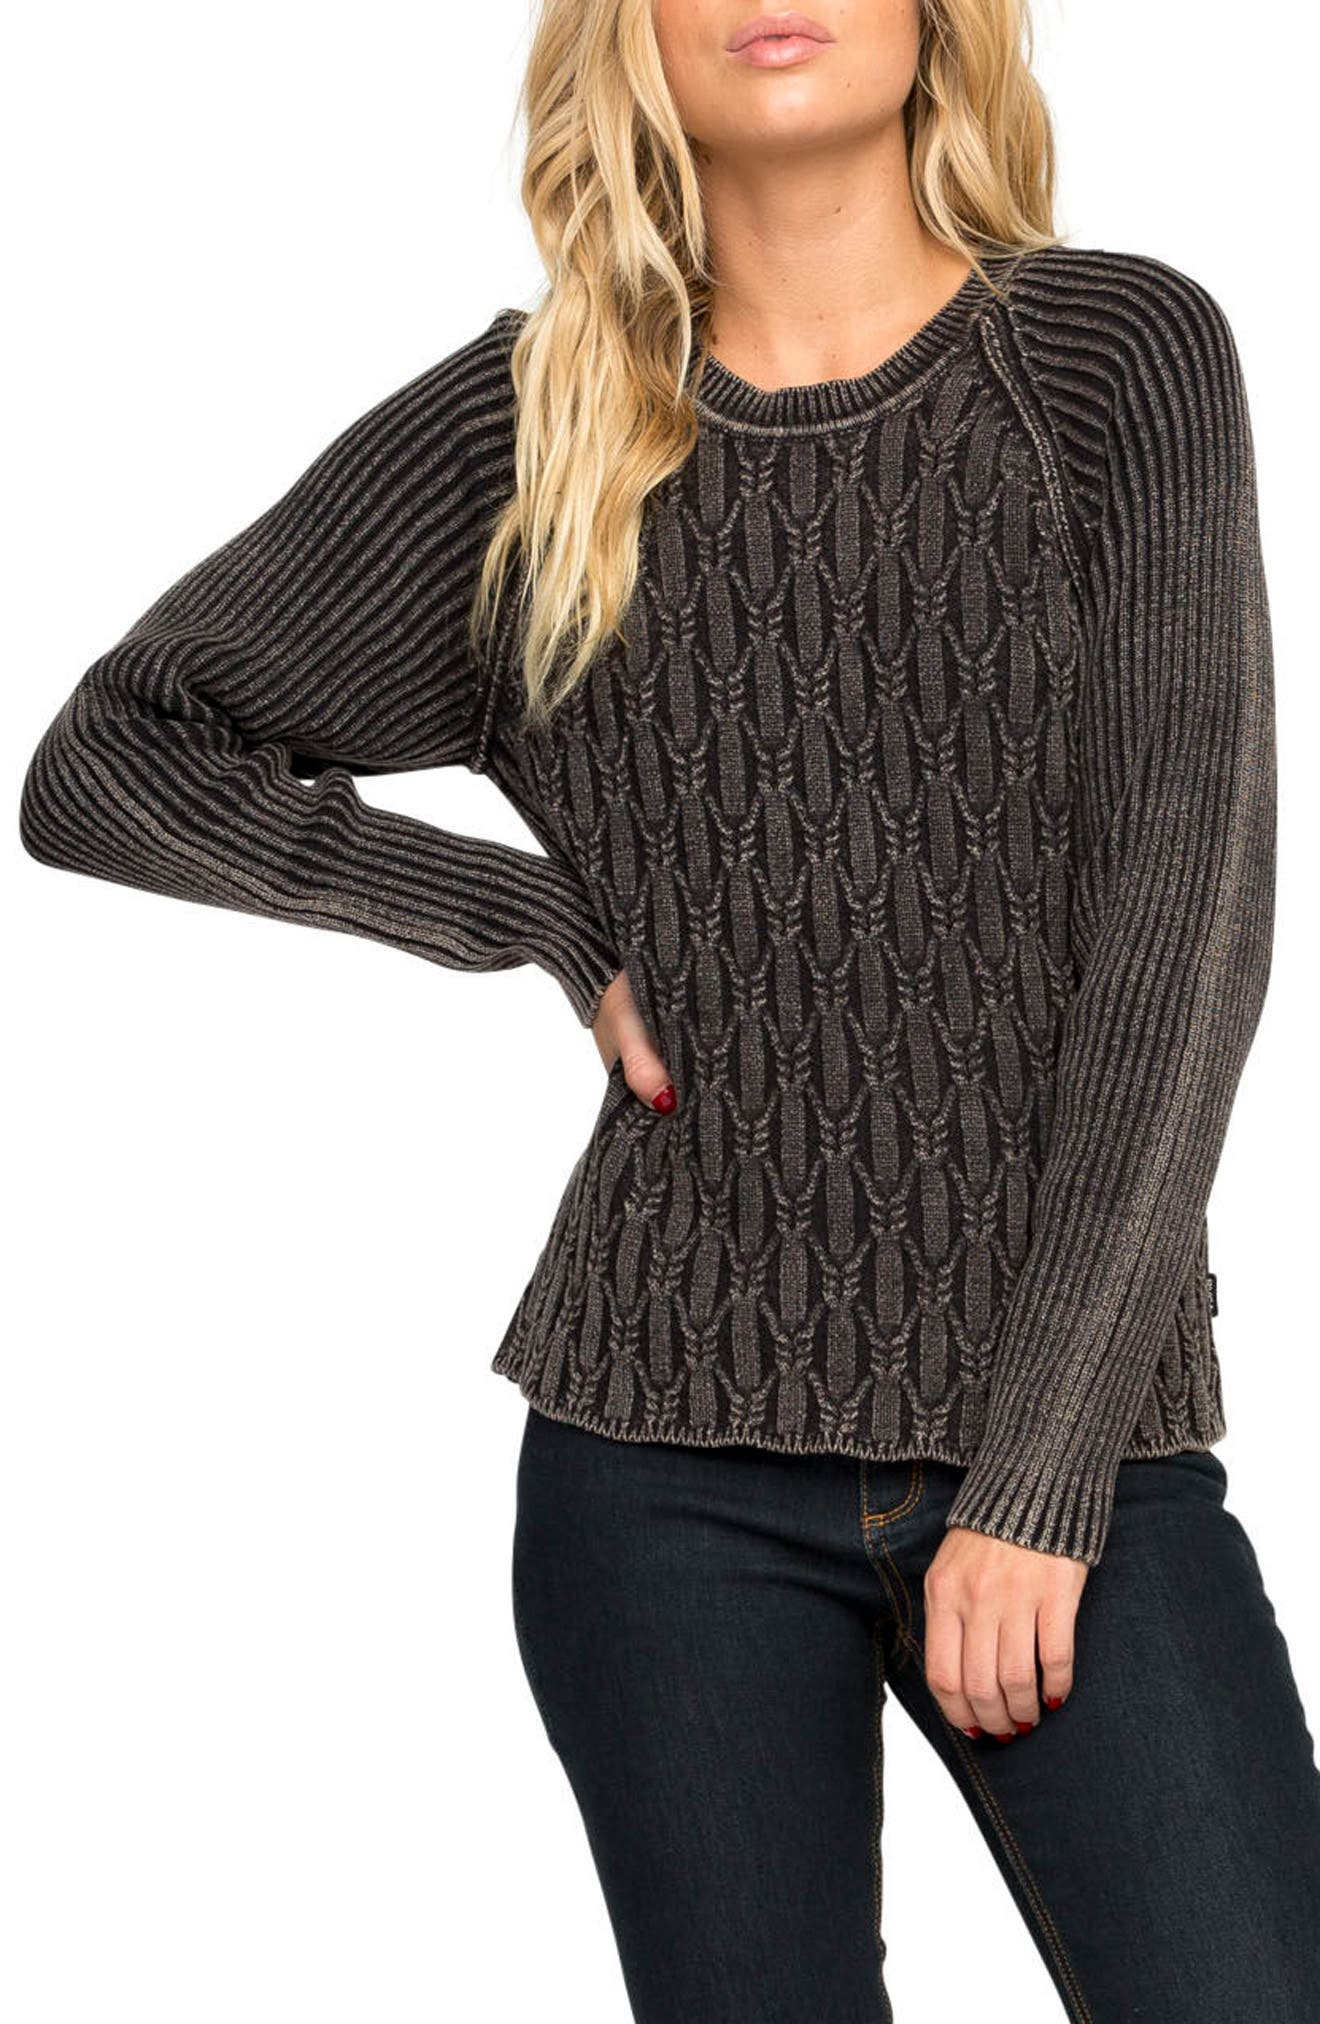 Chained Cotton Sweater,                             Main thumbnail 1, color,                             Black